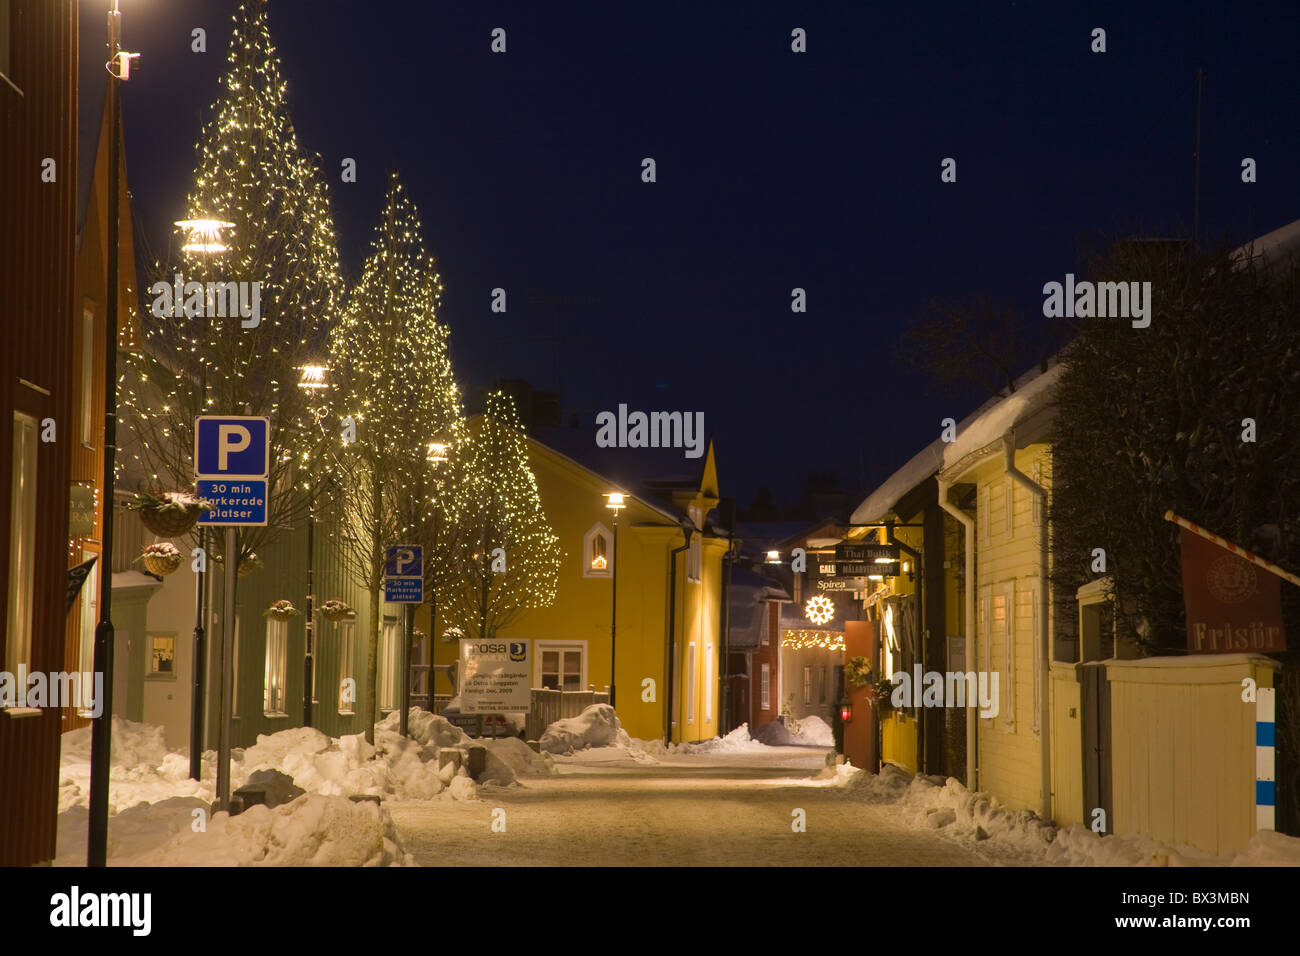 Trosa Small Town By Night Christmas Illuminated Decorations Winter